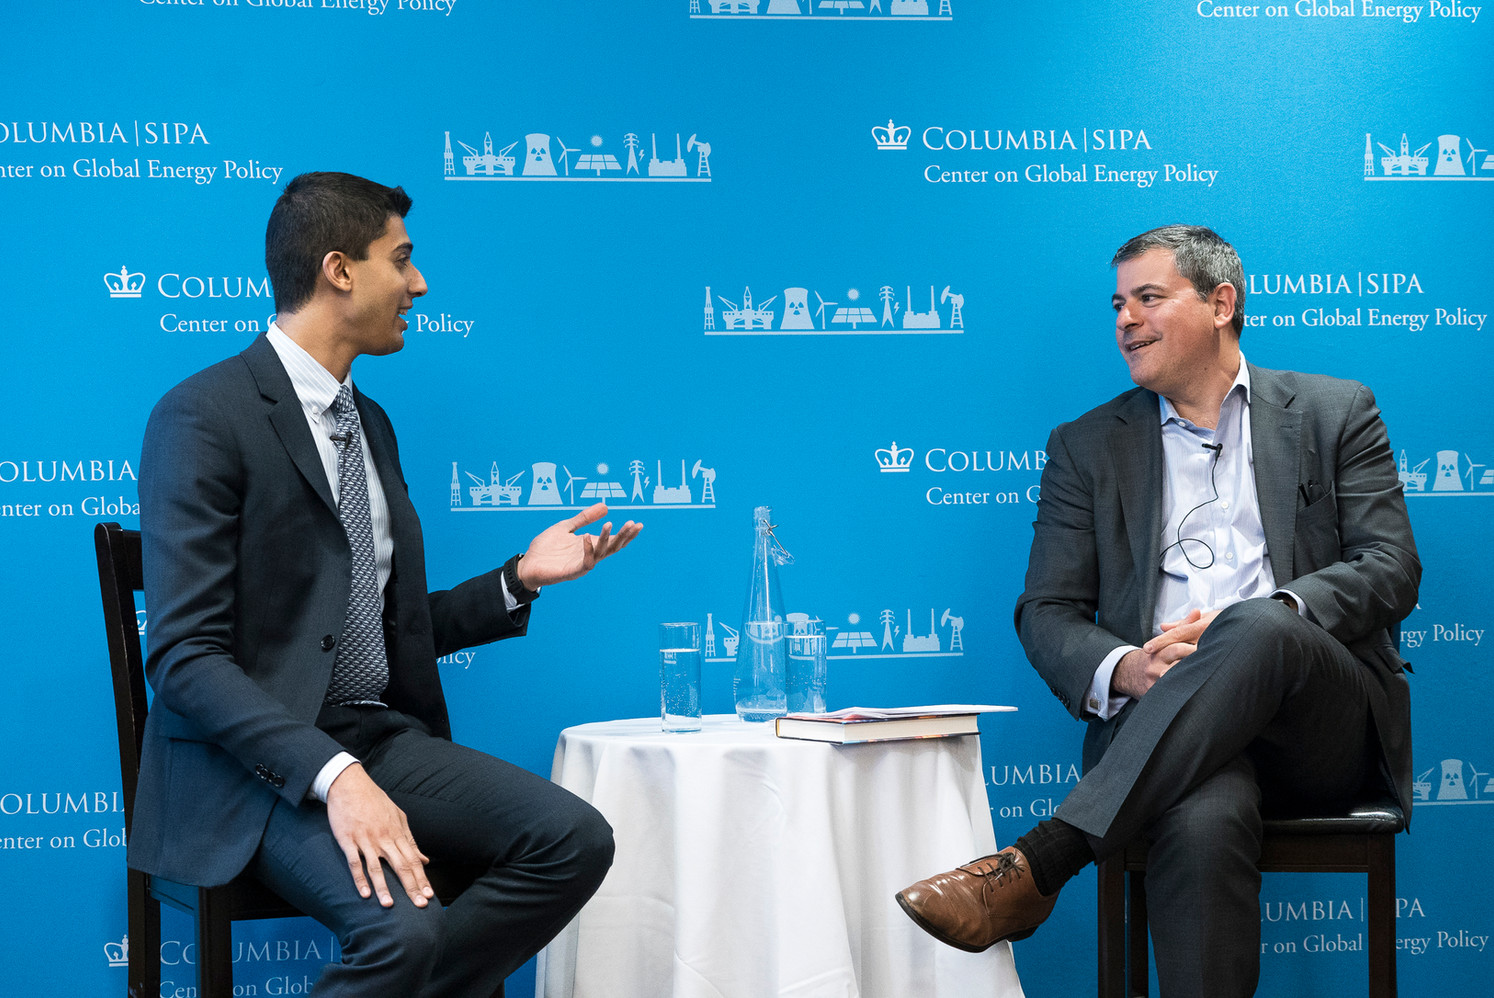 Columbia University launch with Center for Global Energy Policy Founding Director Jason Bordoff